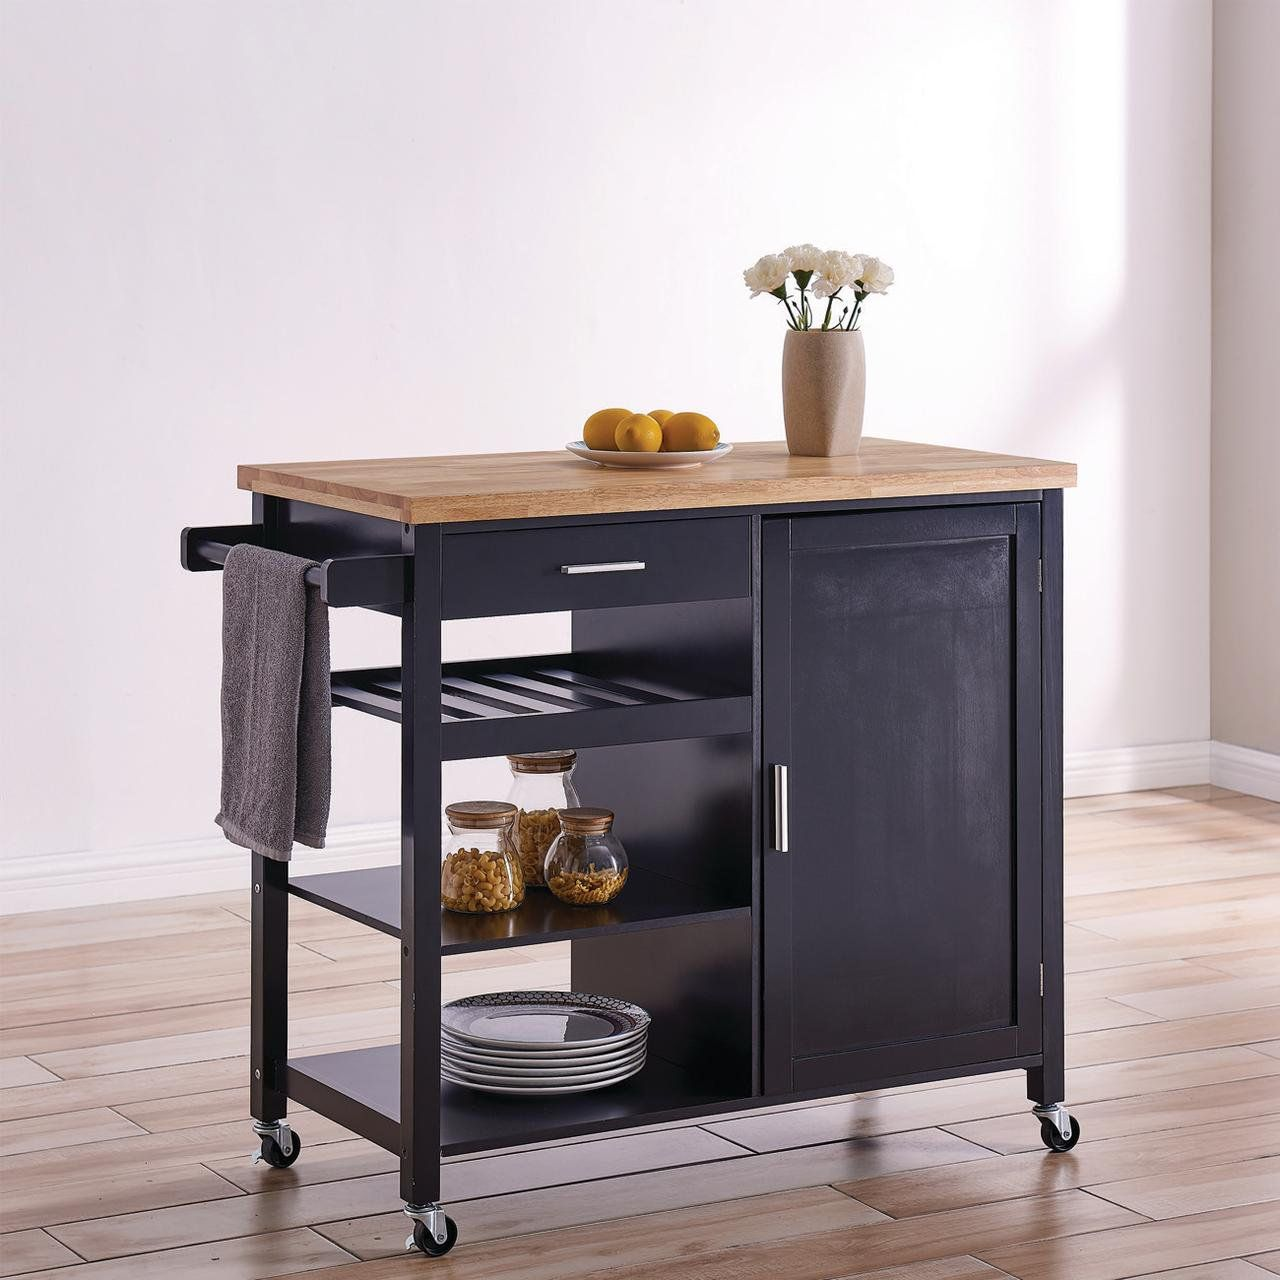 Belleze Wood Top Multi Storage Cabinet Rolling Kitchen Island Table Cart With Wheels Black Walmart Com Rolling Kitchen Island Kitchen Island Table Kitchen Cart Wooden kitchen cart on wheels